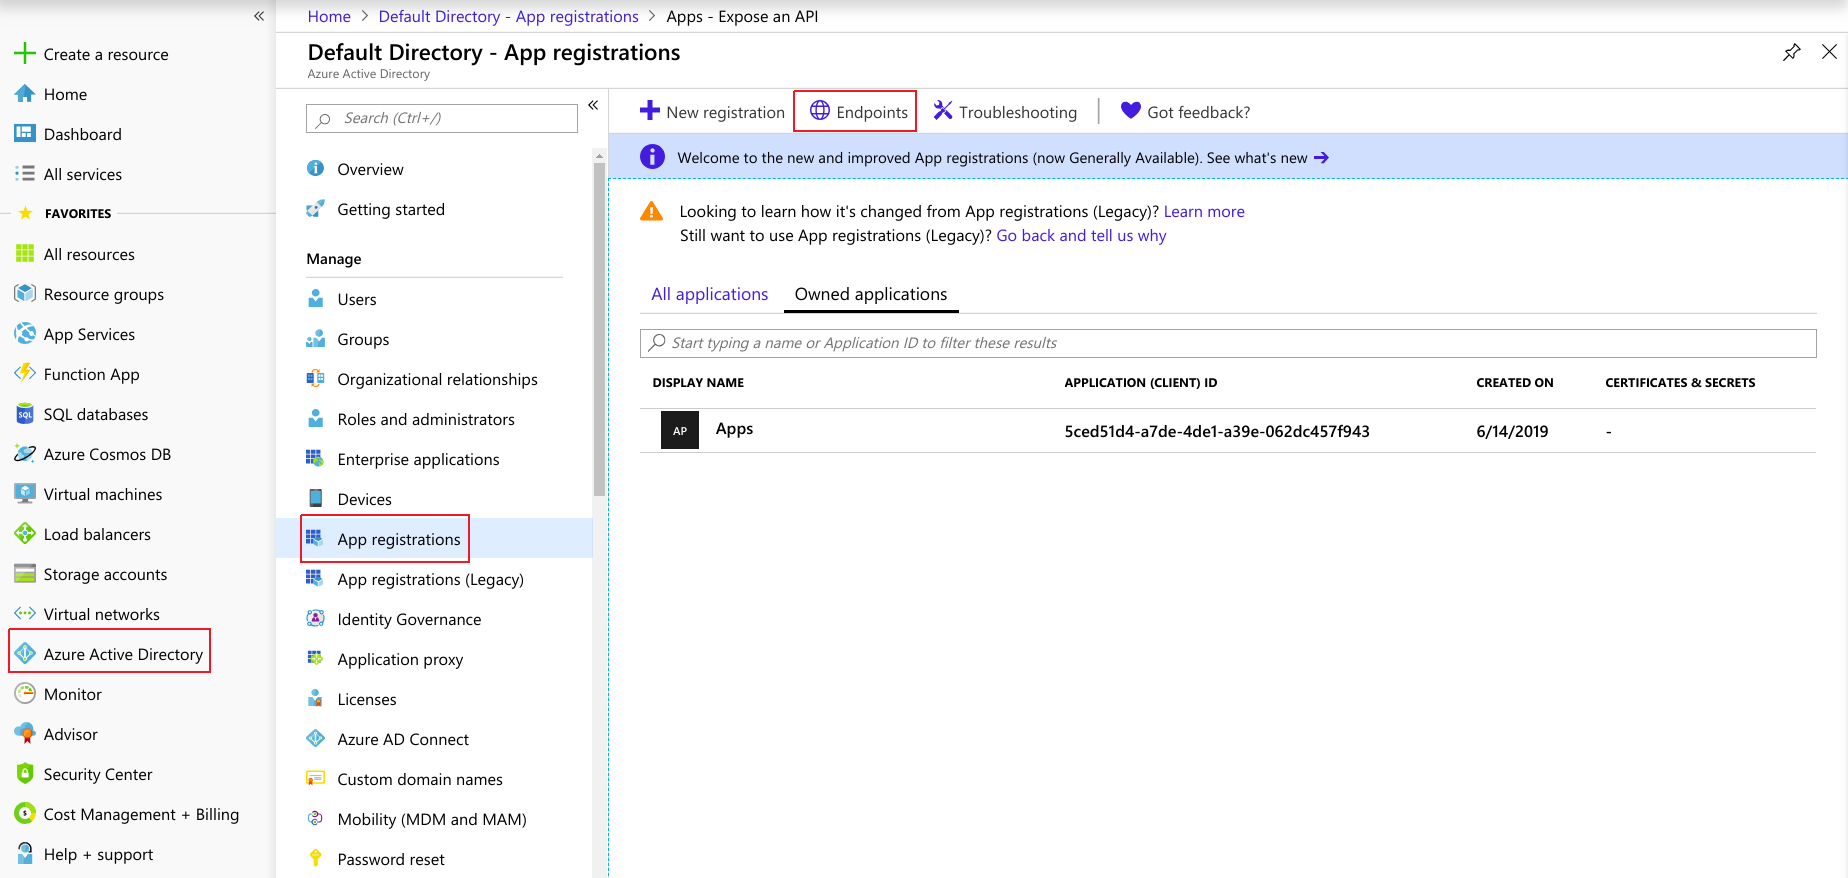 SAML Single Sign-On (SSO) using Azure AD as Identity Provider (IdP),for SAML 2.0 Azure AD endpoints